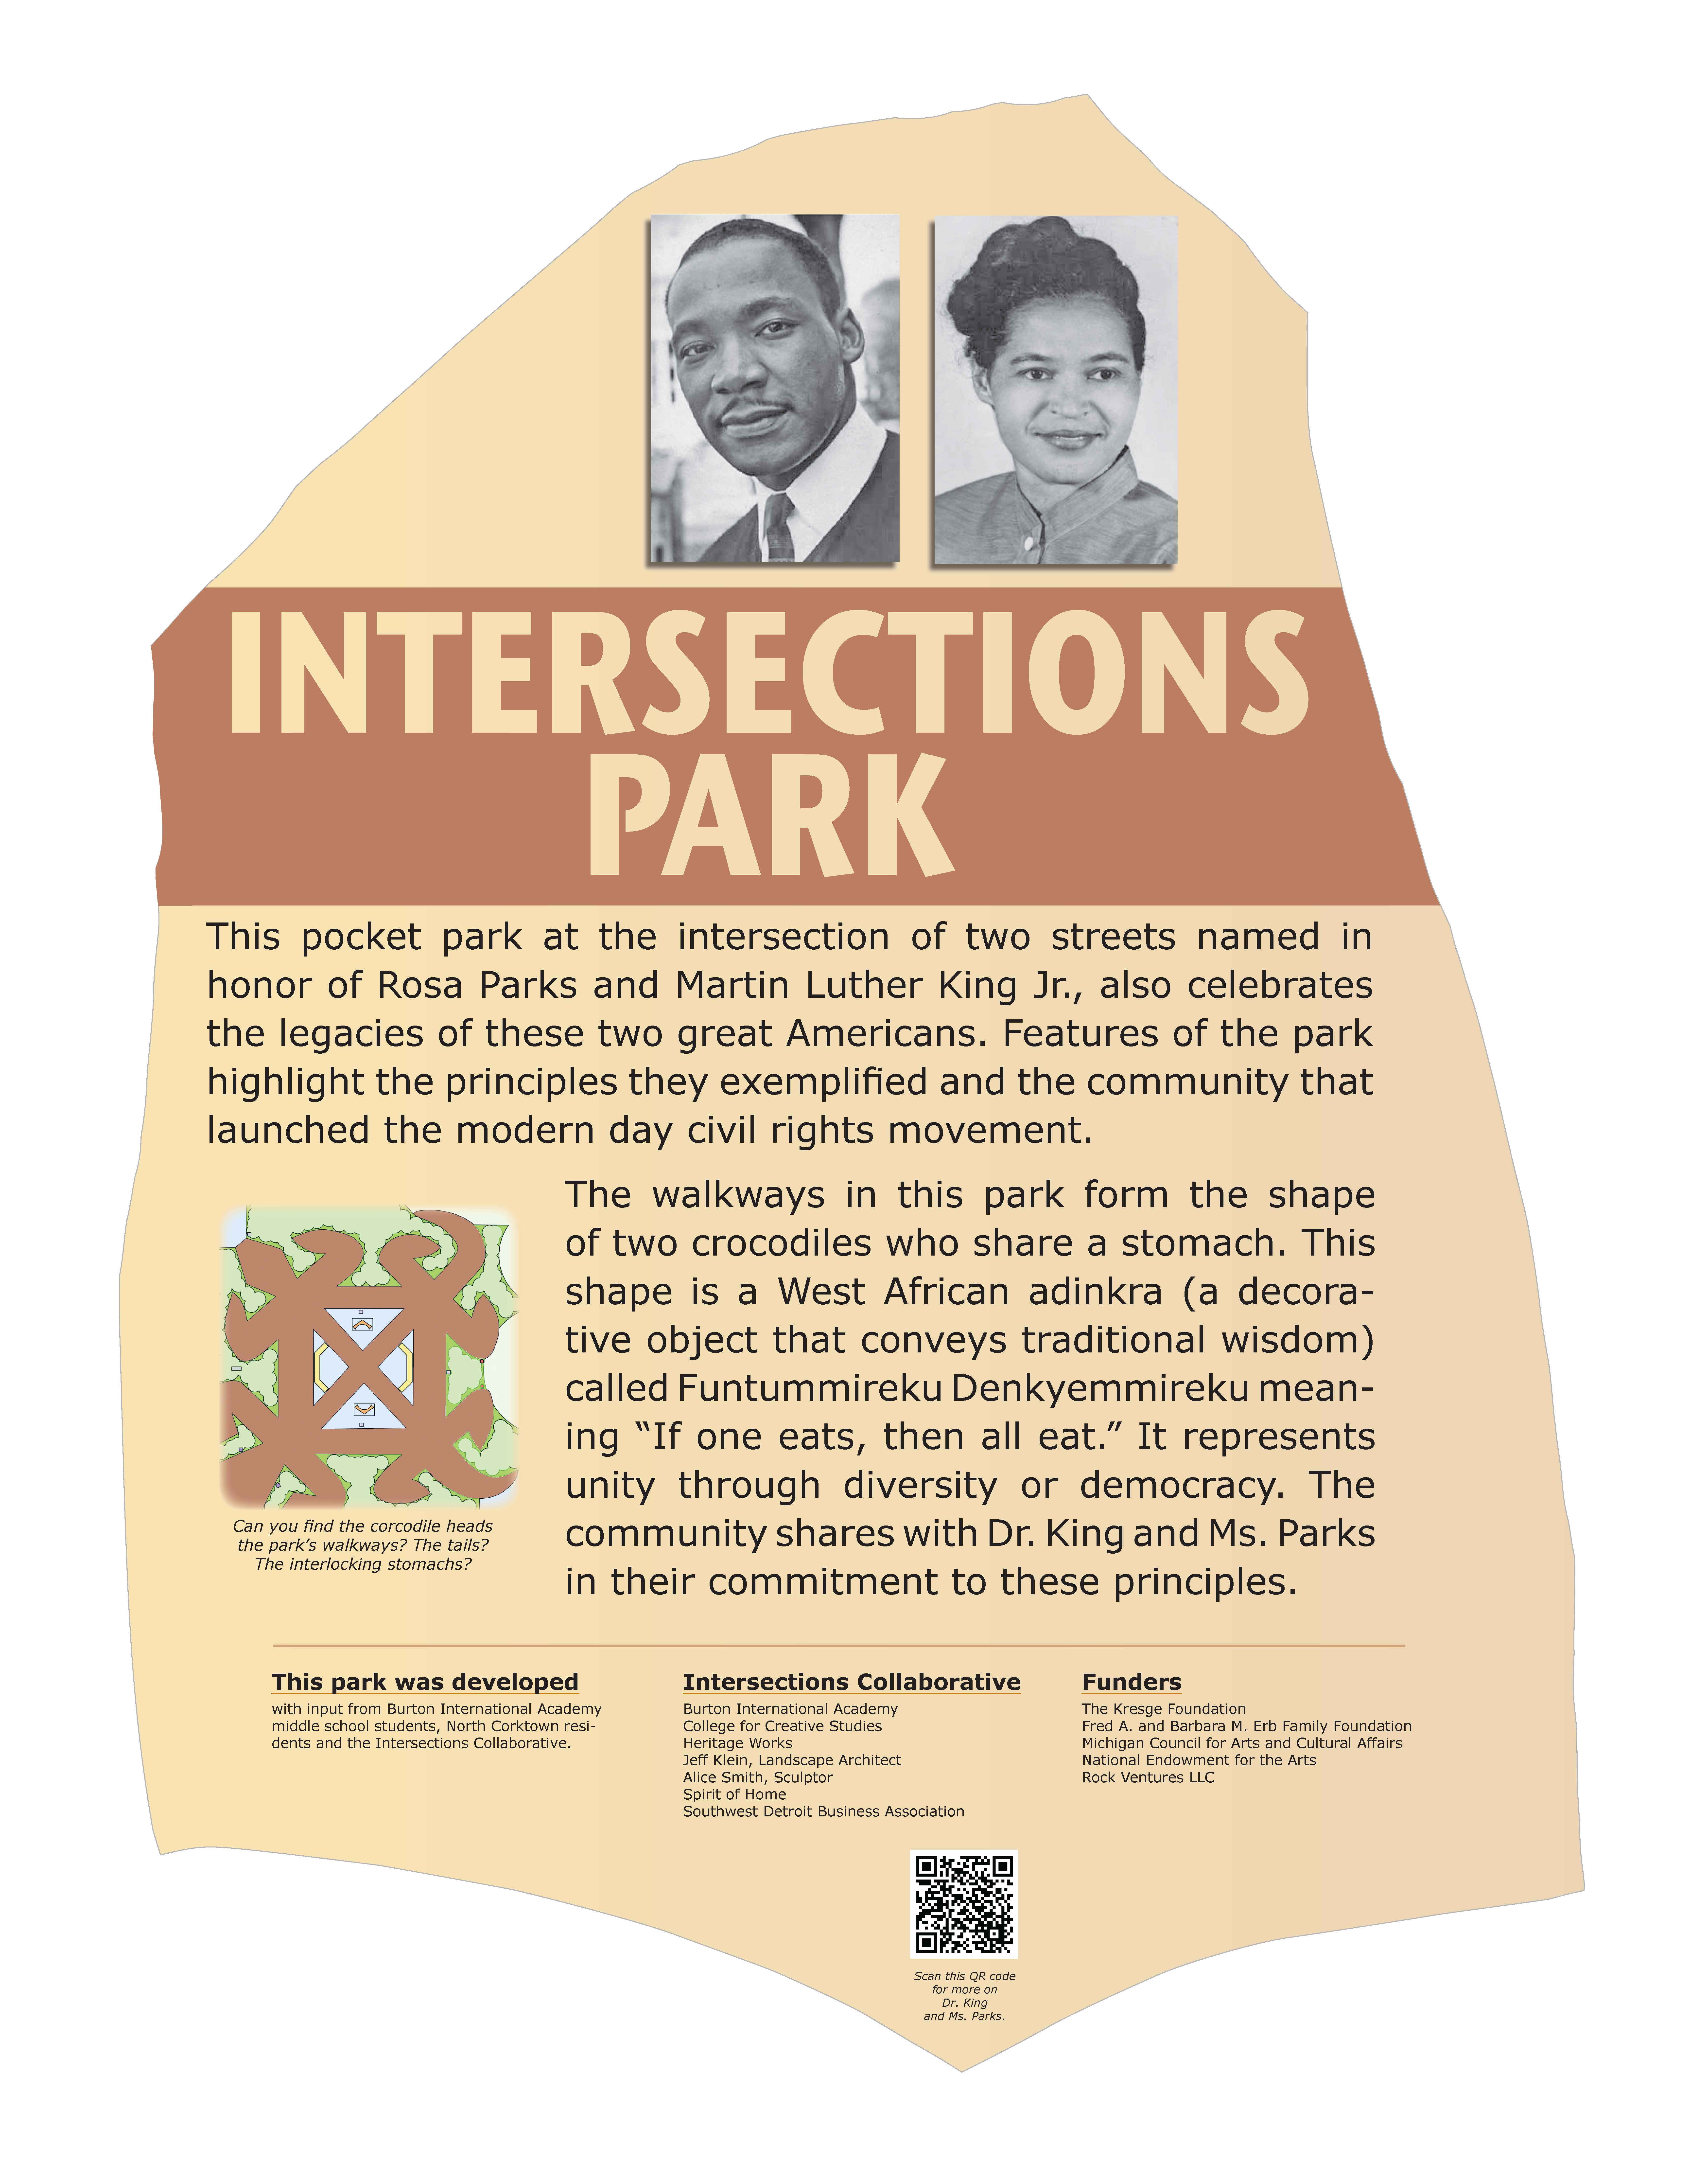 Intersections Park